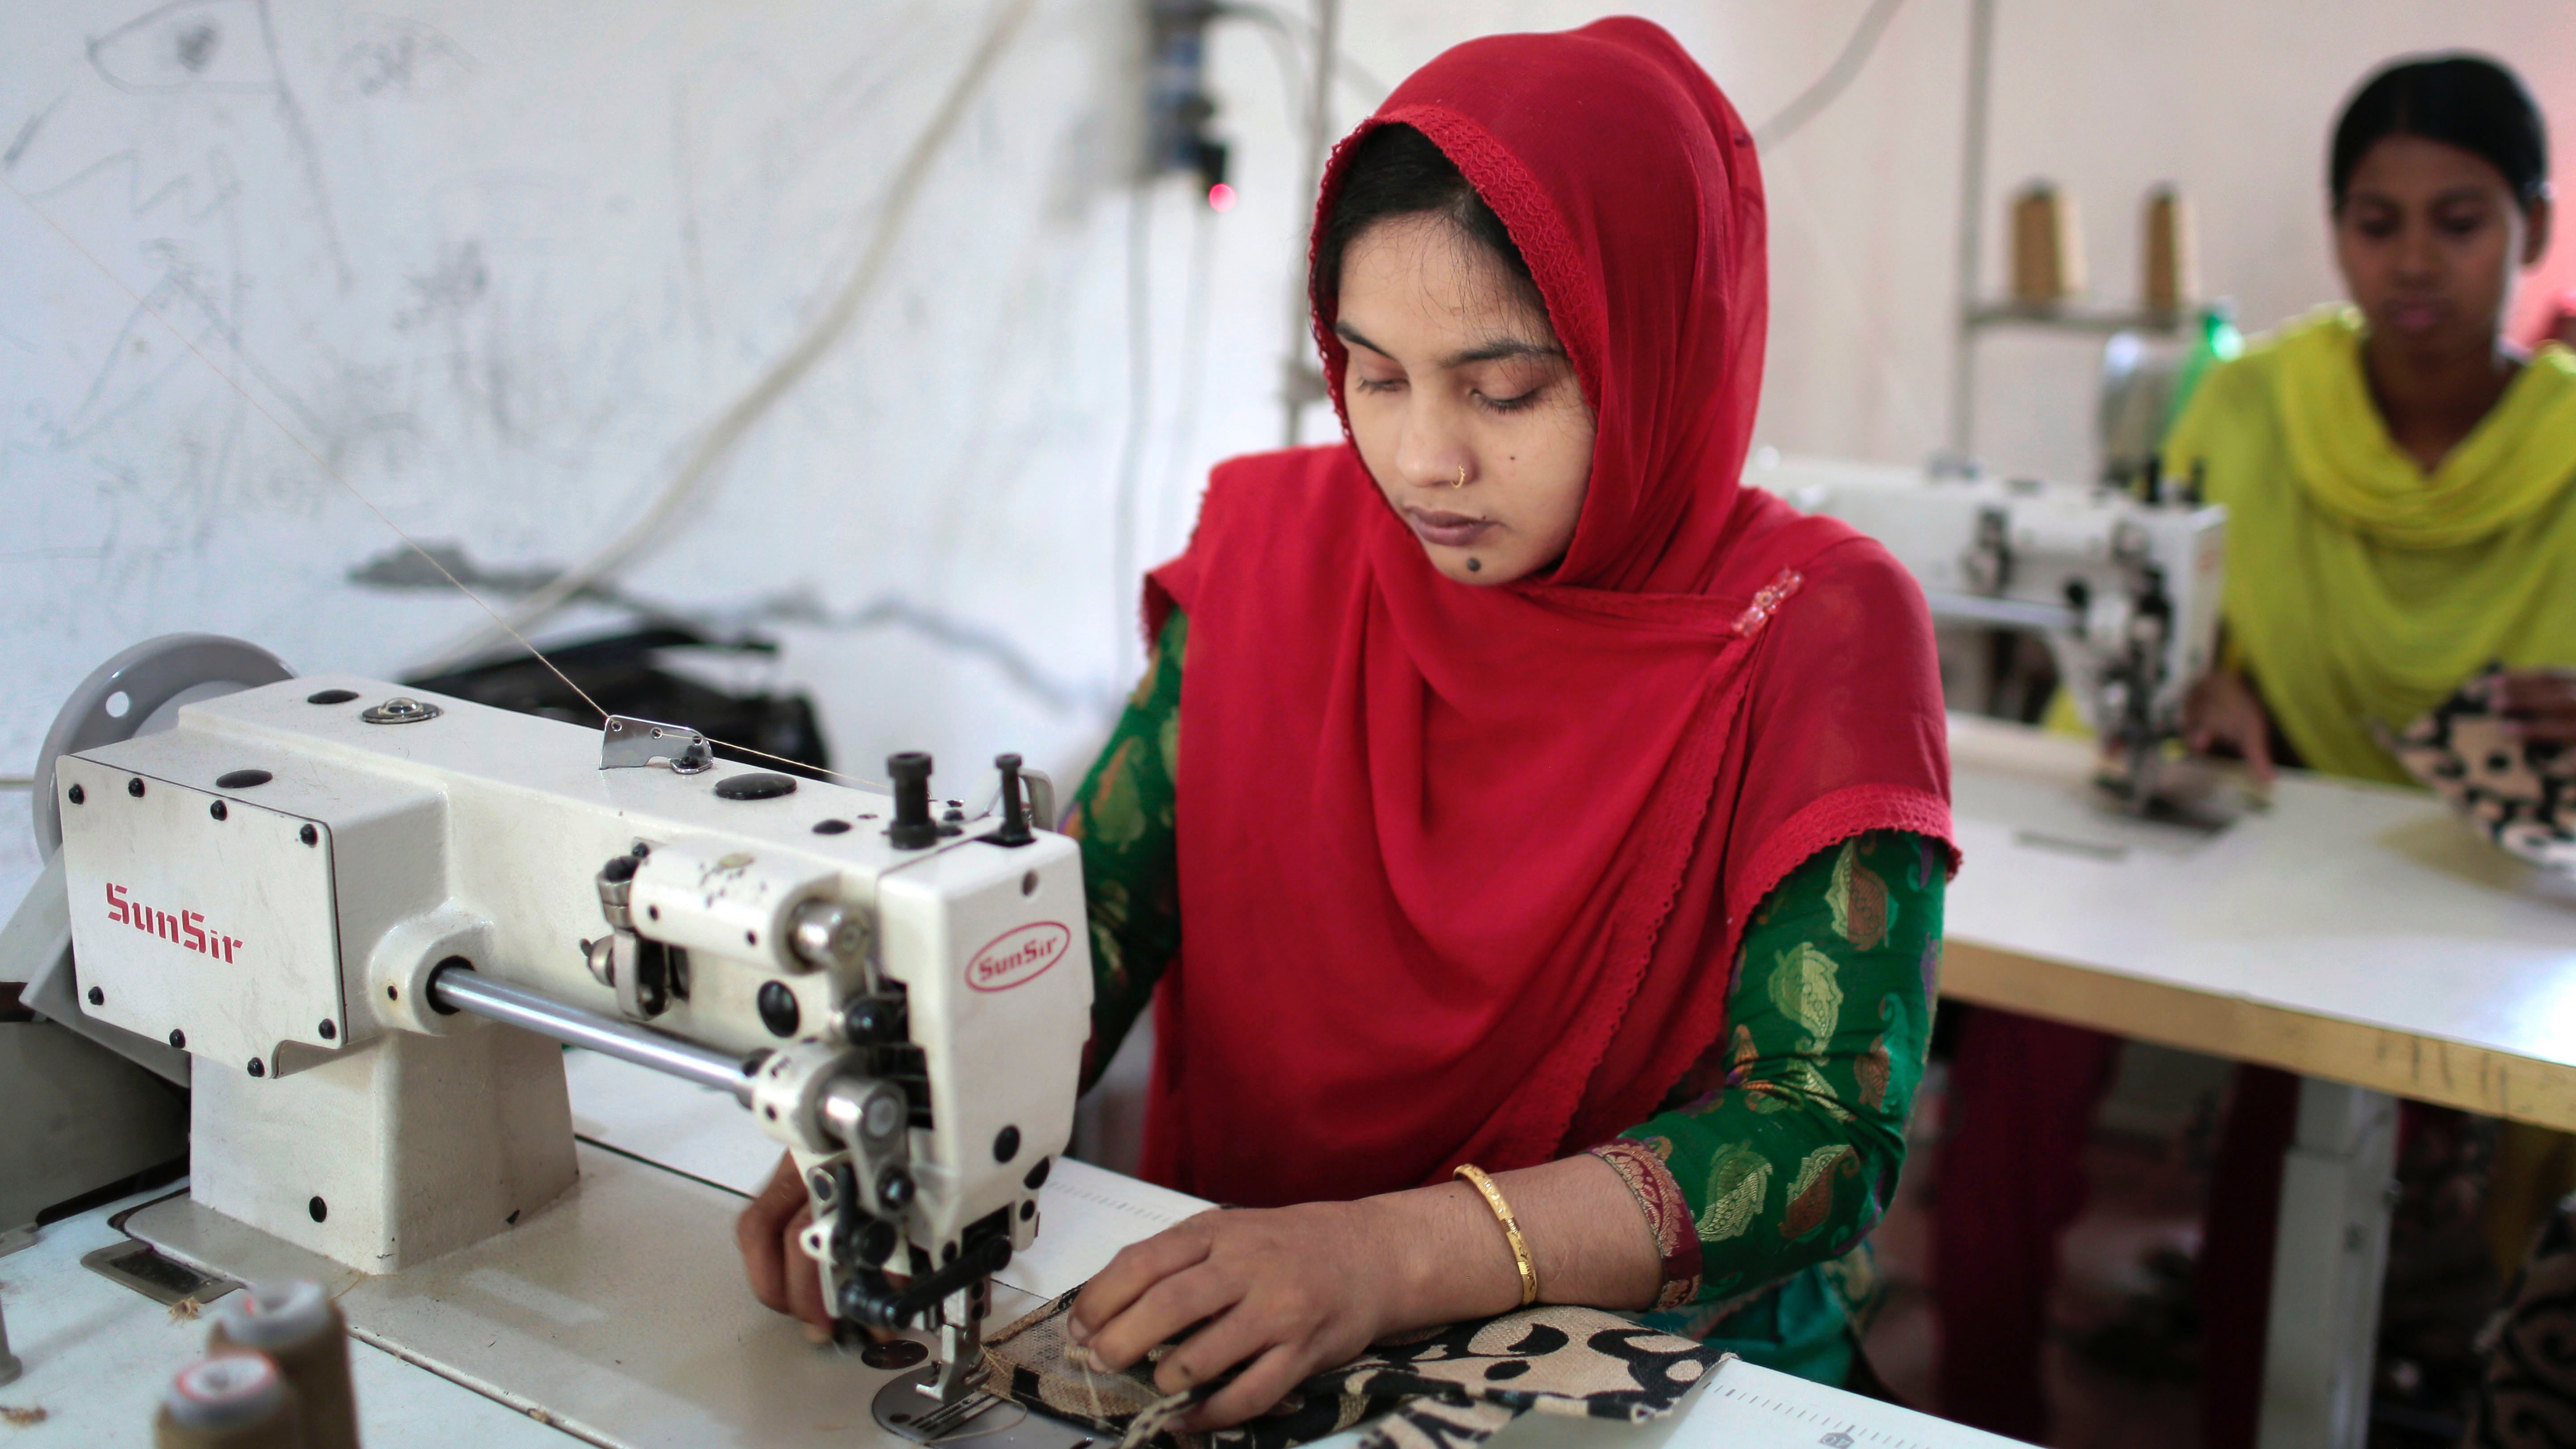 FILE- In this April 20, 2015 file photo, Bangladeshi garment workers, who worked at the Rana Plaza garment factory that collapsed two years ago, work at a factory meant to rehabilitate survivors of the accident, the worst in the history of the garment industry, in Savar, near Dhaka, Bangladesh. The bloody weekend attack by Bangladeshi militants that left more than two dozen dead has also dealt a deadly blow to the country's vital garment industry. Clothing manufacturing, the Southeast Asian nation's top export industry, had been recovering after a disastrous factory collapse three years ago shook up the industry, forcing workshops producing for foreign brands to improve working conditions. (AP Photo/A.M. Ahad, File)